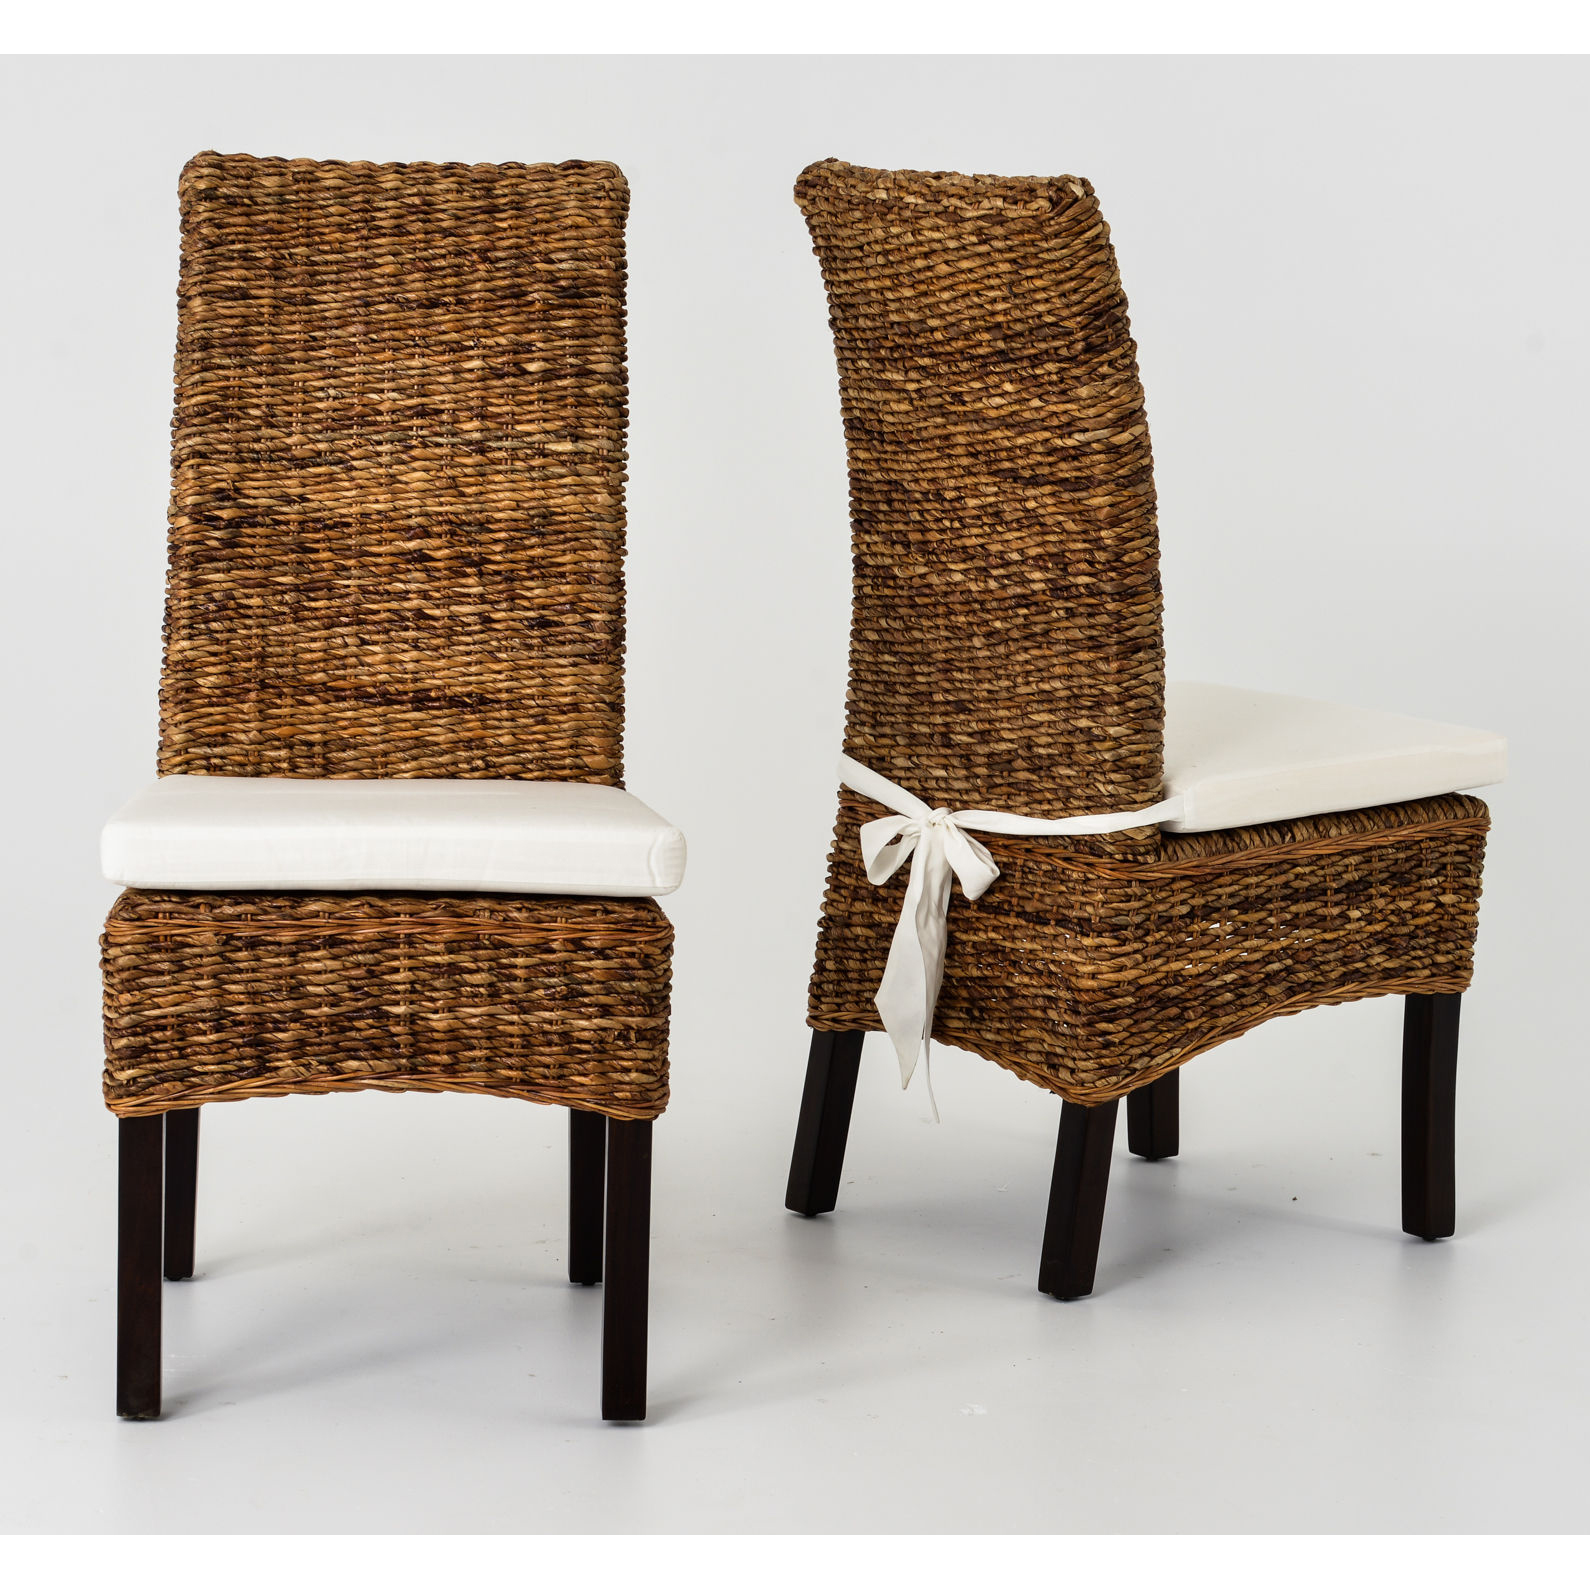 Pier One Wicker Furniture | Pier 1 Imports Chairs | Pier 1 Wicker Furniture